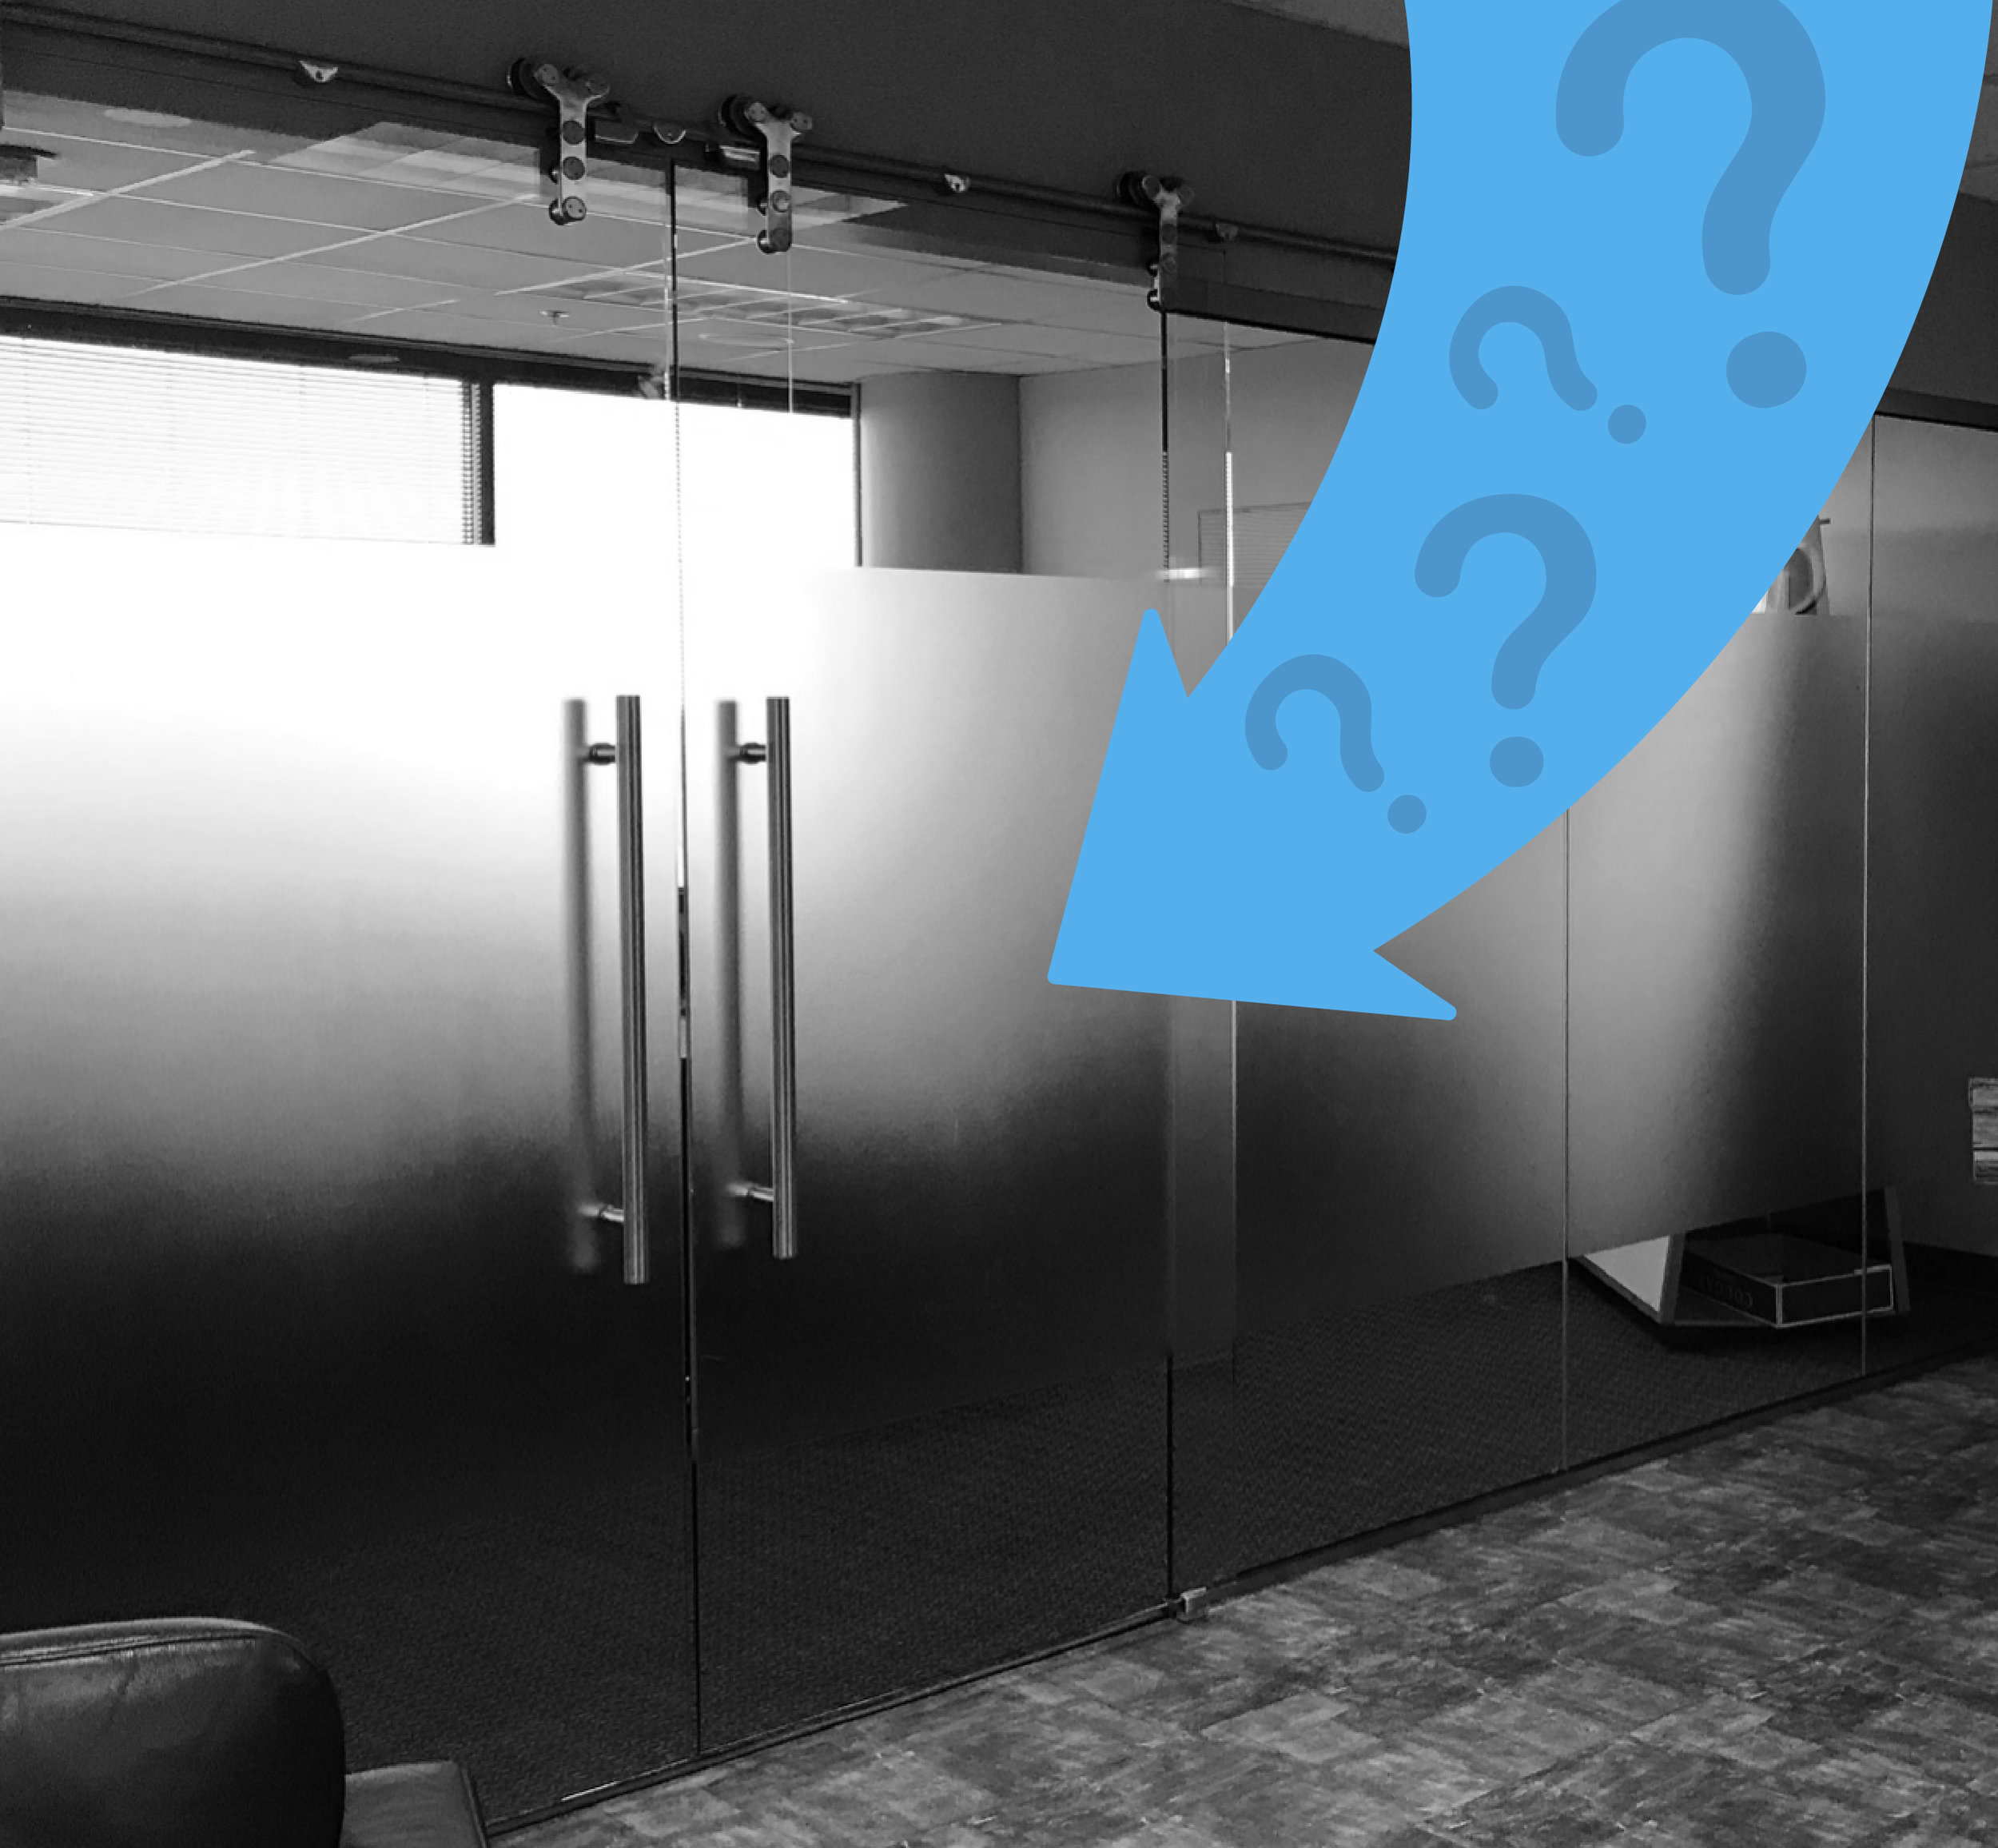 Norman Doors are the product of bad UI. We want to pull these sliding doors toward us. Badly.